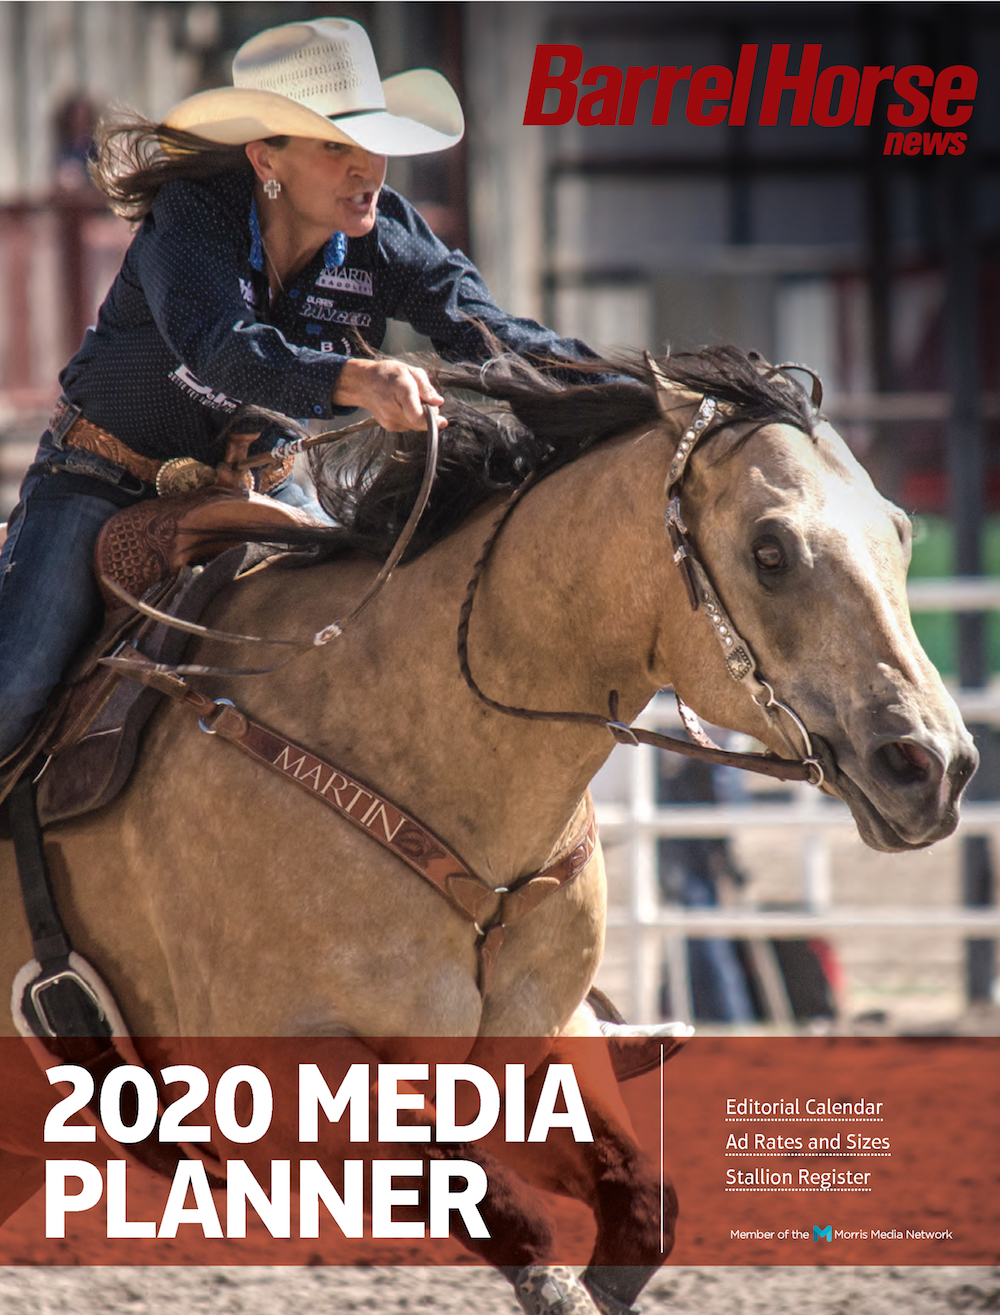 Barrel Horse News 2020 Print Media Kit cover page